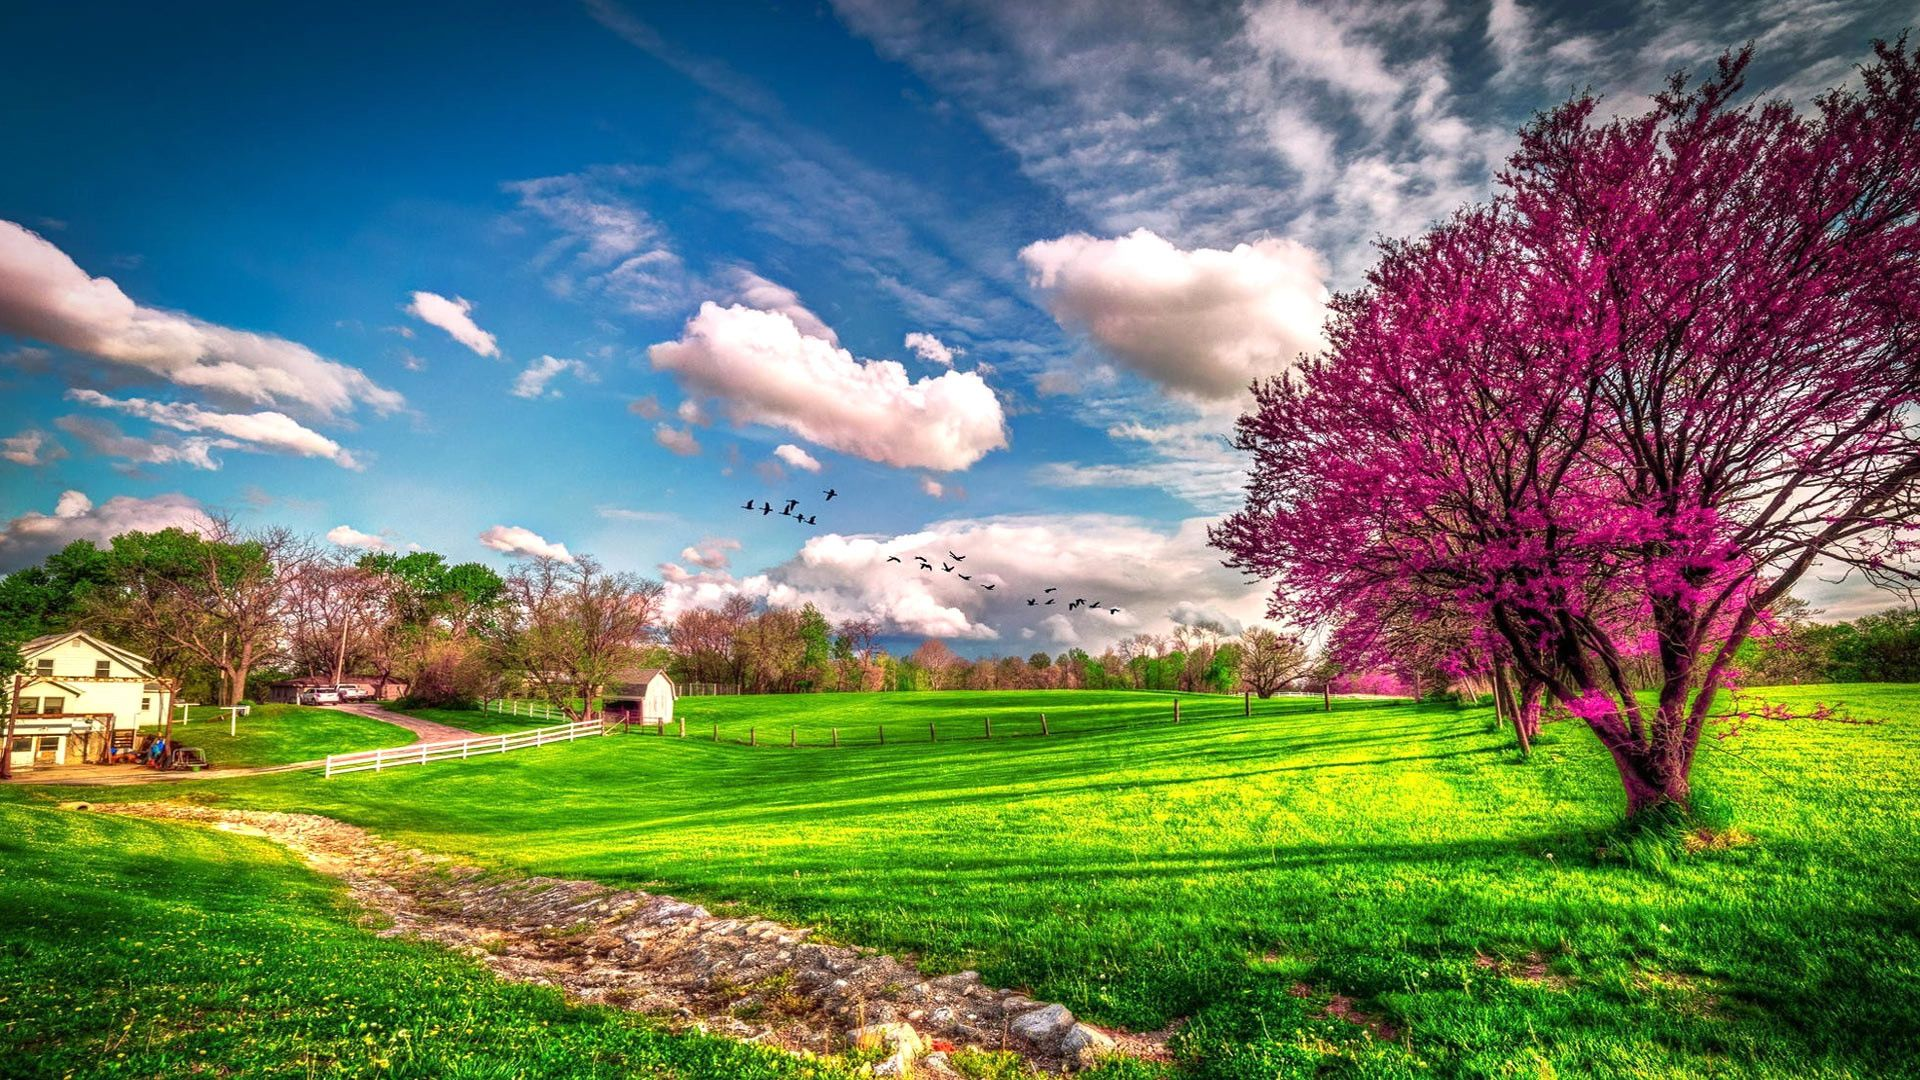 Landscape Beautiful Spring Nature Spring Wallpapers Seasons